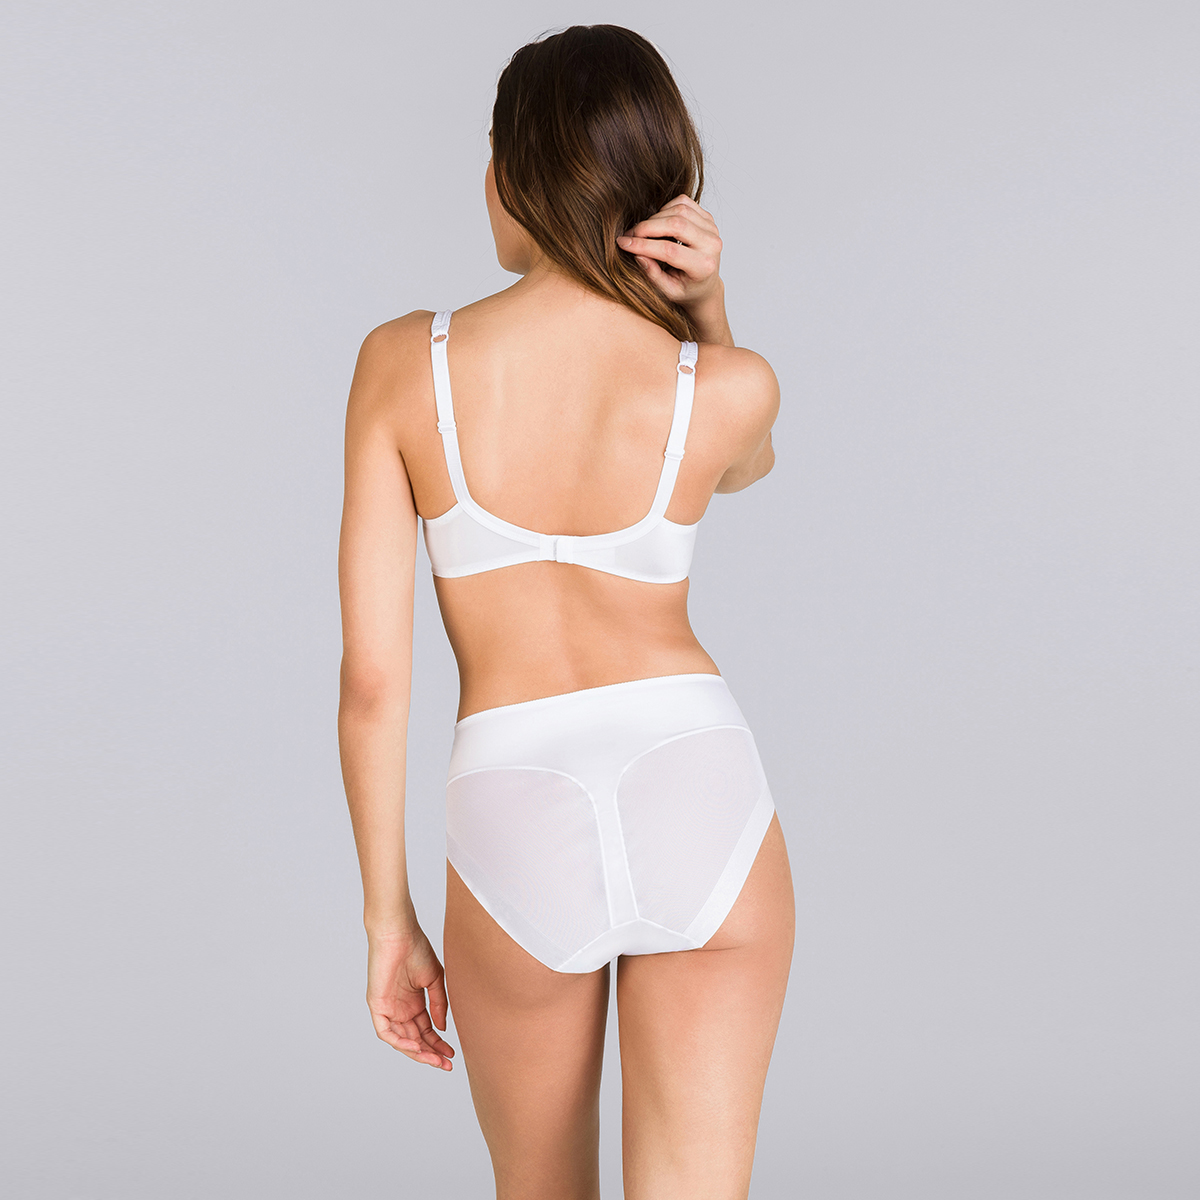 Playtex P04R3 White Soft Cup with Mesh Soft Feel Underwired Bra